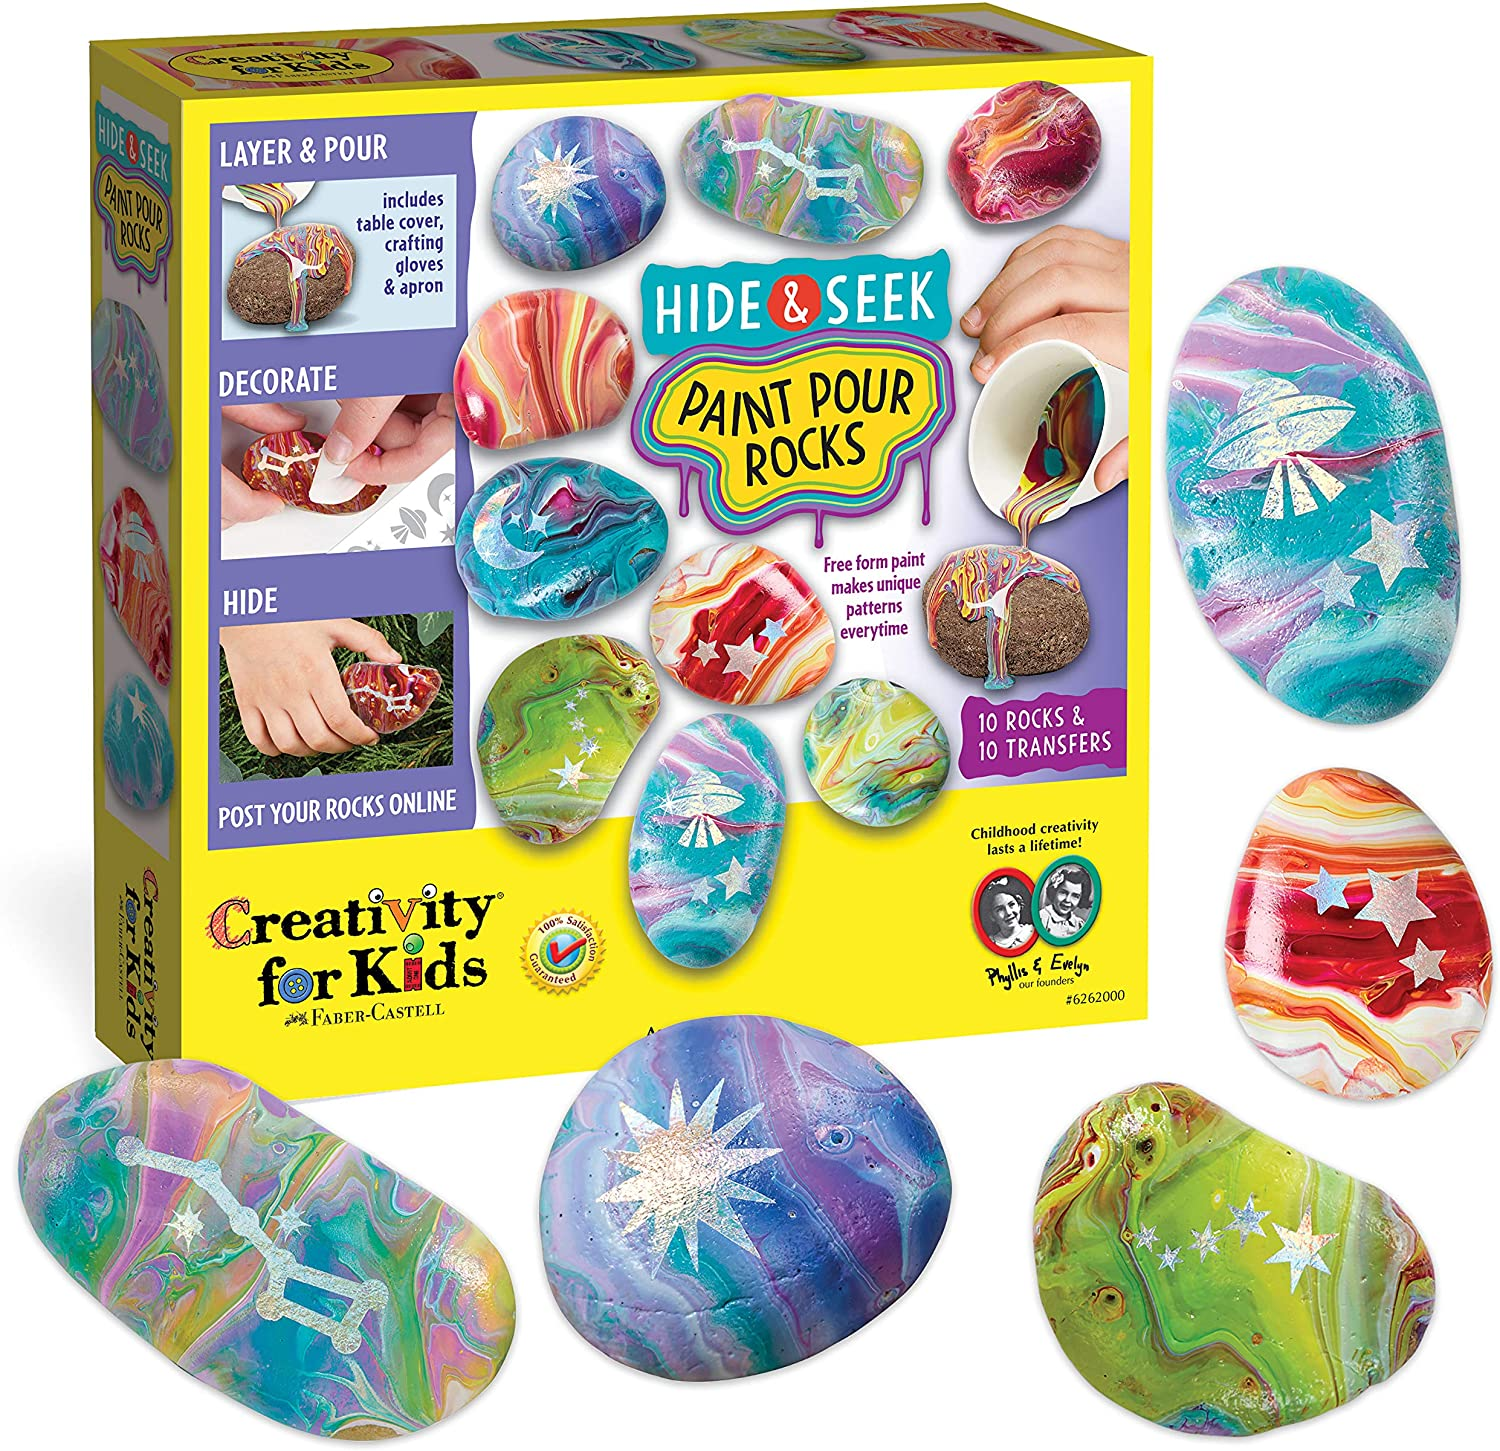 Creativity for Kids Hide and Seek Paint Pour Rock Painting Art Kit - Arts and Craft Activities for Kids